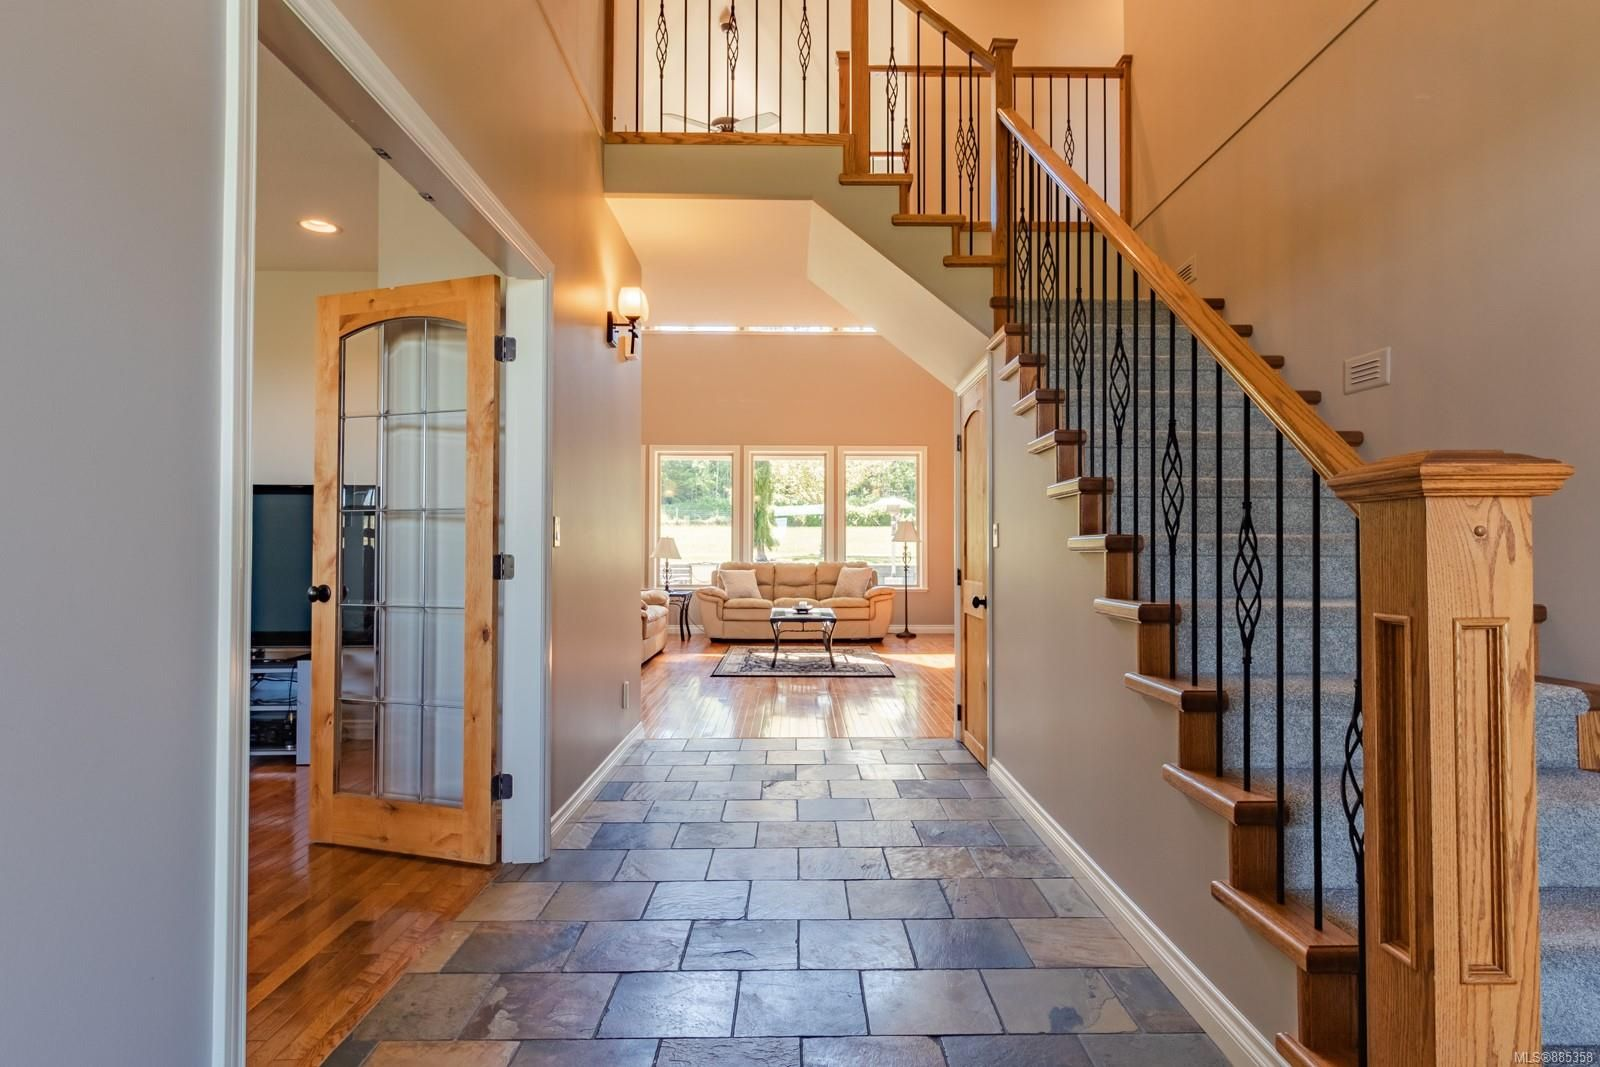 Photo 31: Photos: 2850 Peters Rd in : PQ Qualicum Beach House for sale (Parksville/Qualicum)  : MLS®# 885358